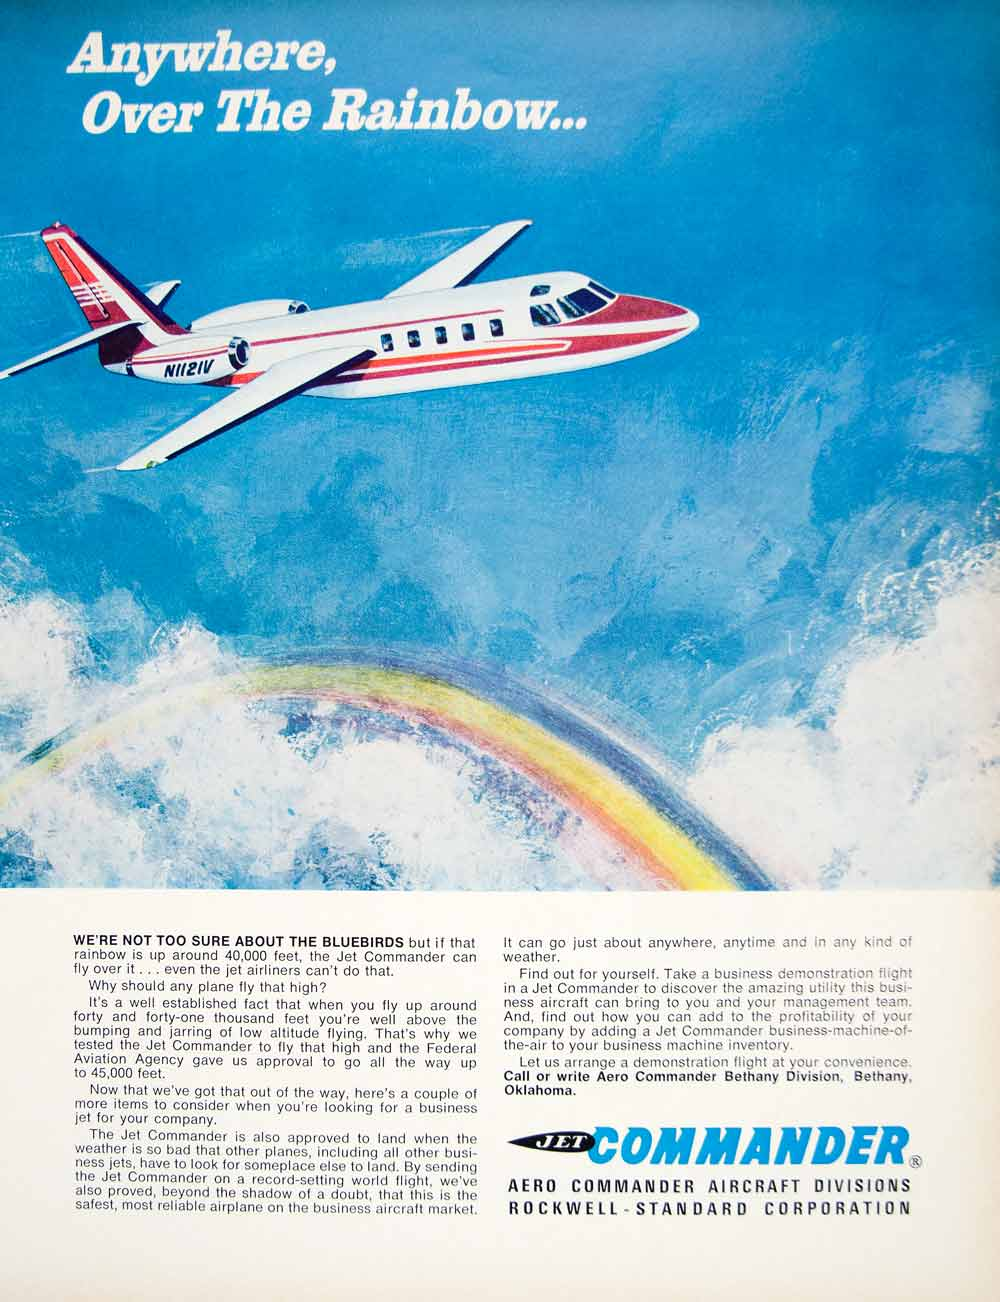 1966 Ad Vintage Aero Jet Commander Airplane Aircraft Private Plane Rainbow YFM3